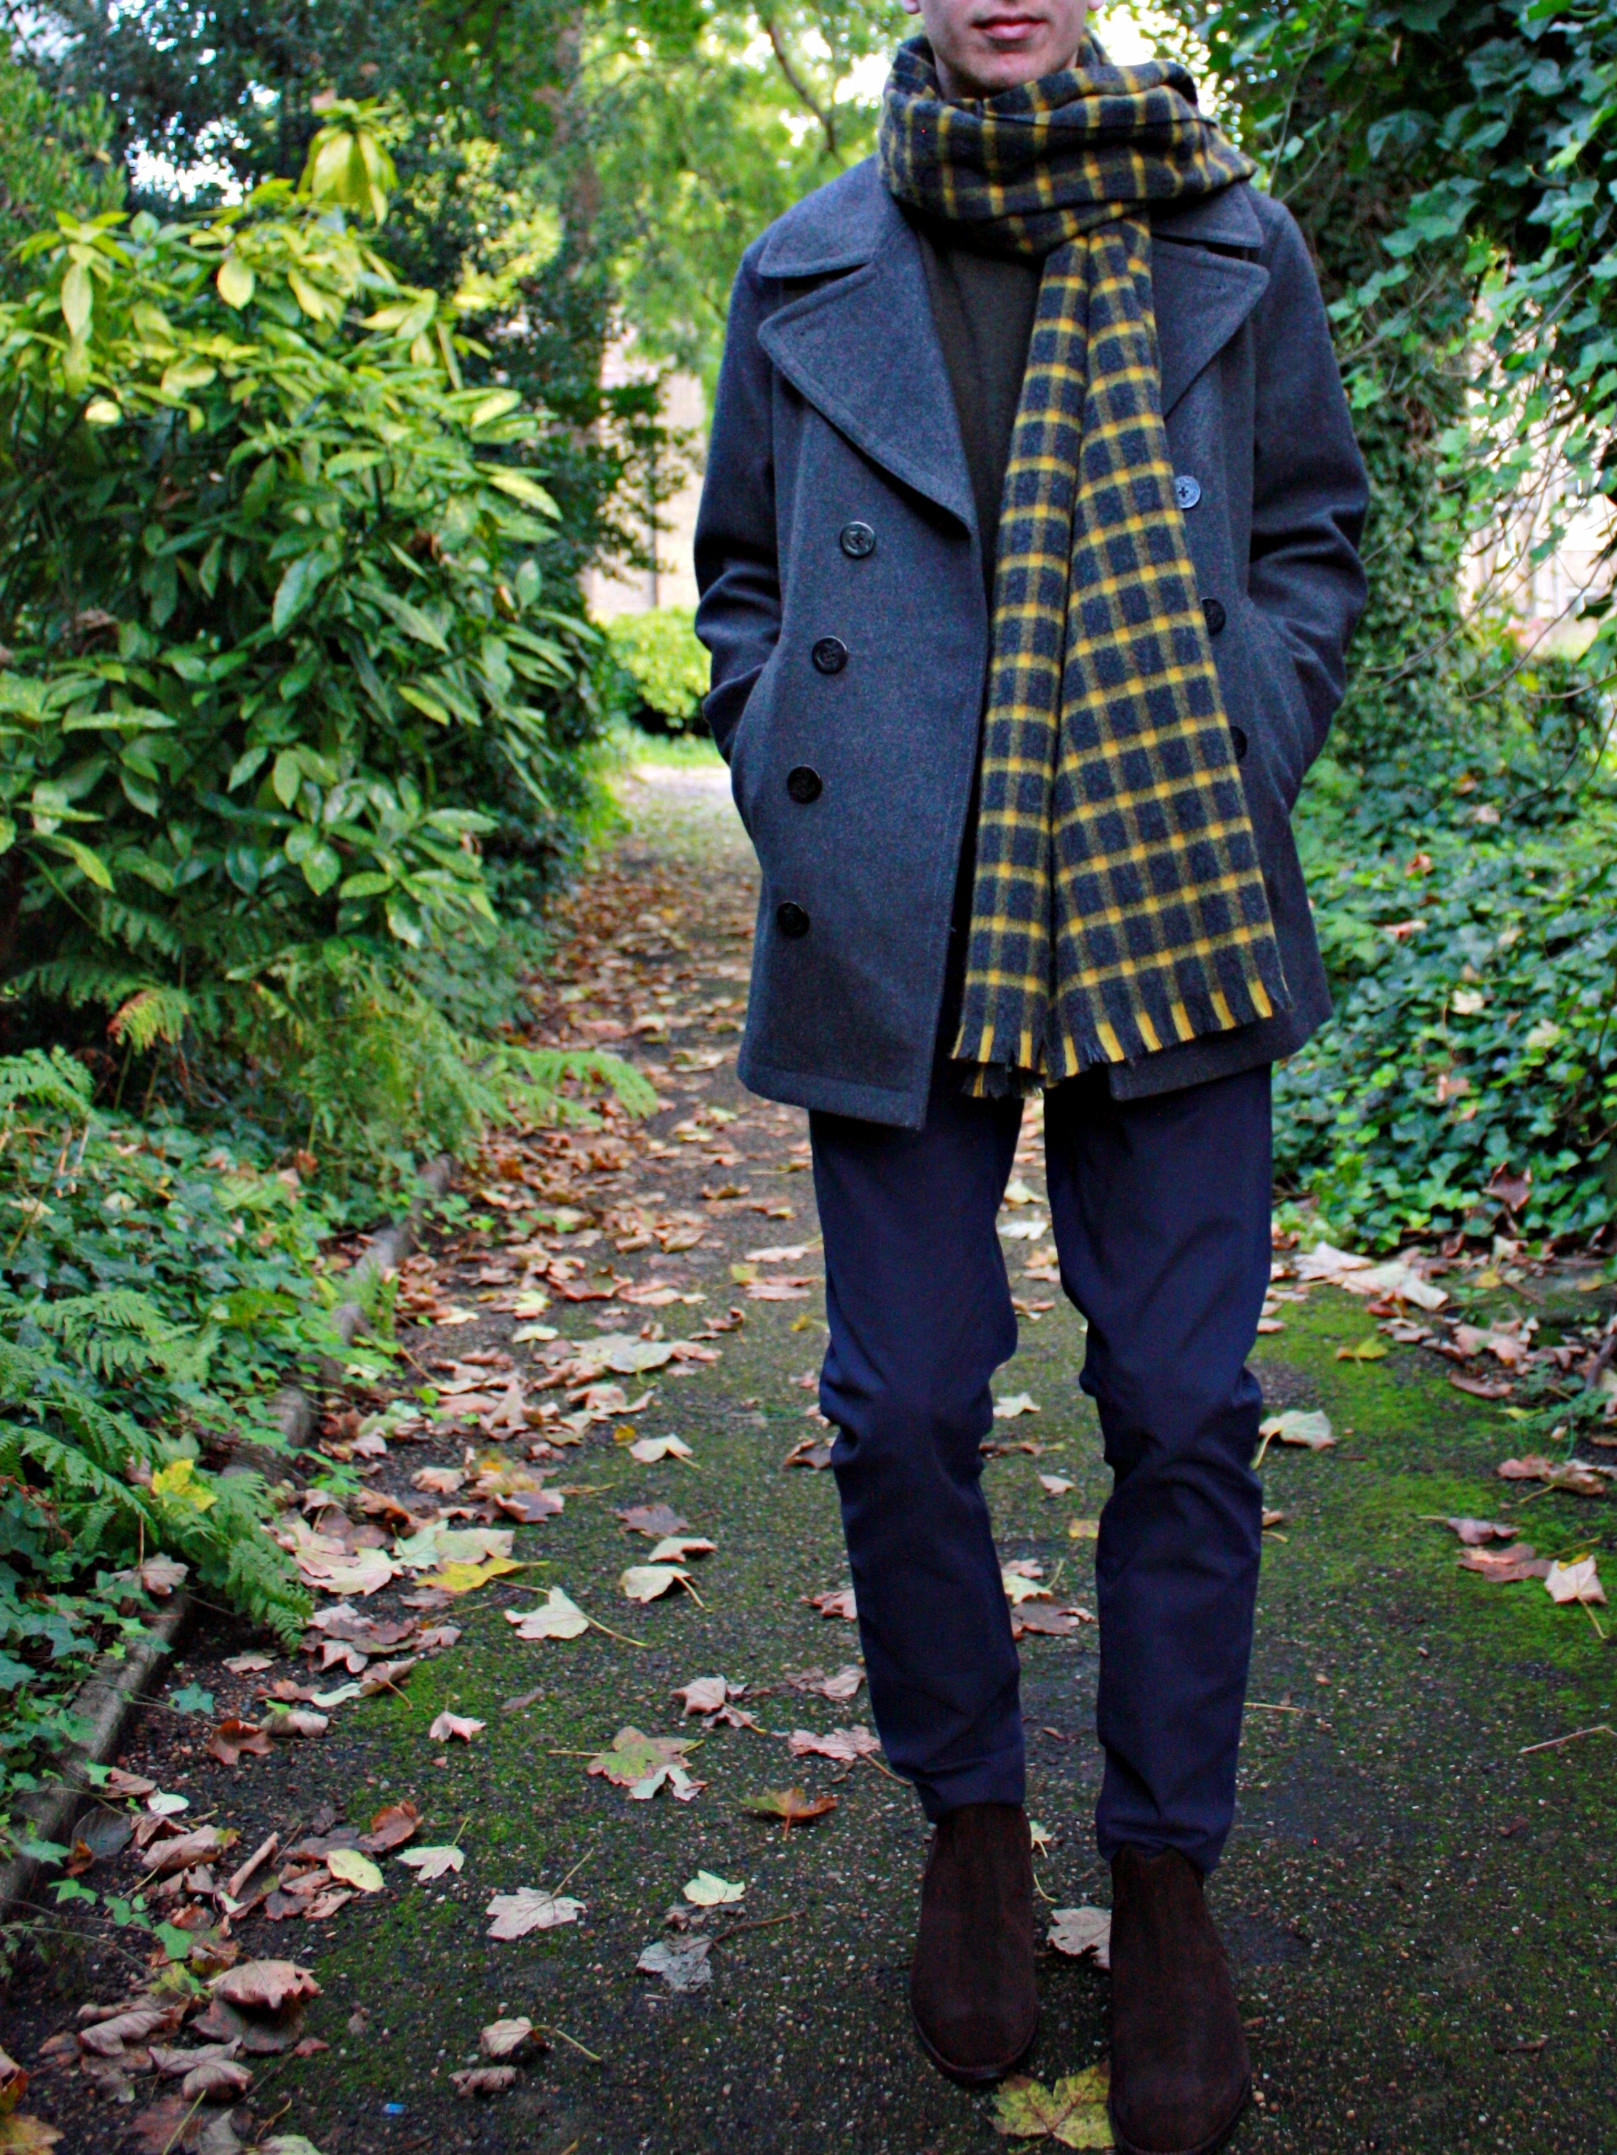 Men's outfit idea for 2021 with navy pea coat, bold coloured crew neck jumper, navy chinos, patterned knitted scarf, brown chelsea boots. Suitable for autumn and winter.